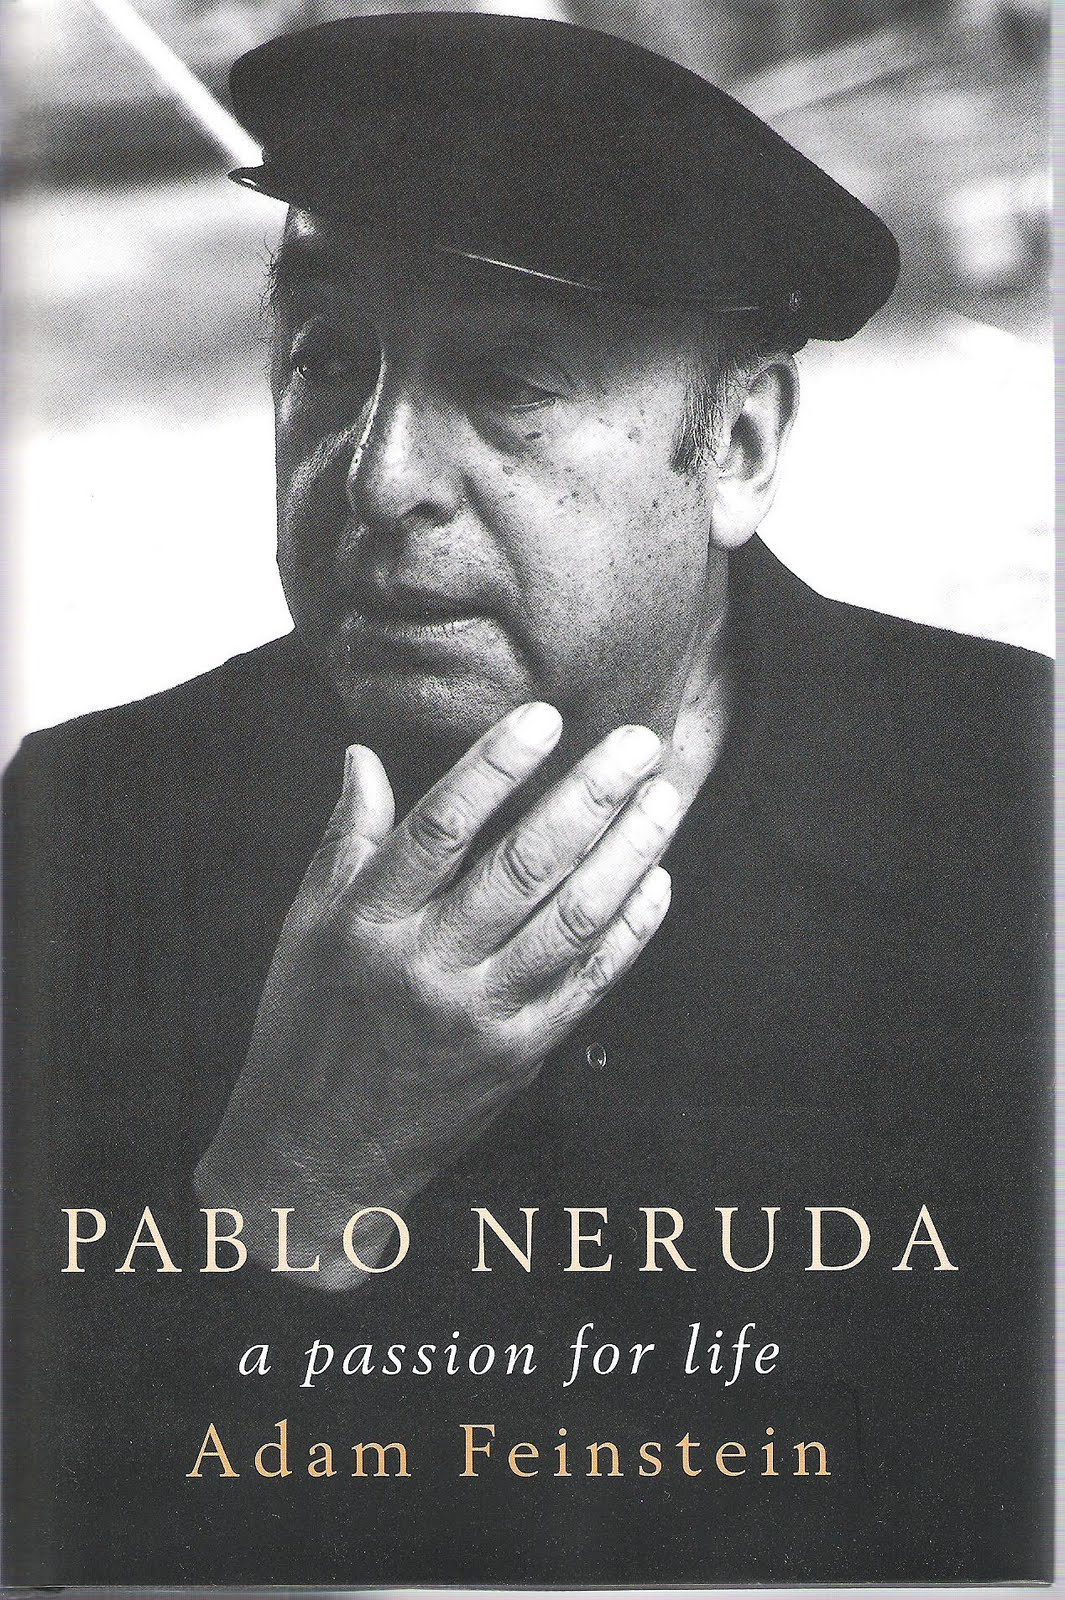 a biography of pablo neruda Biography themes and style youth he became a great admirer of the poetry of jan neruda and paul verlaine and when he changed his name he adopted pablo from paul verlaine and neruda from jan to prevent his parents from discovering that he was doing this he changed his name to pablo neruda.